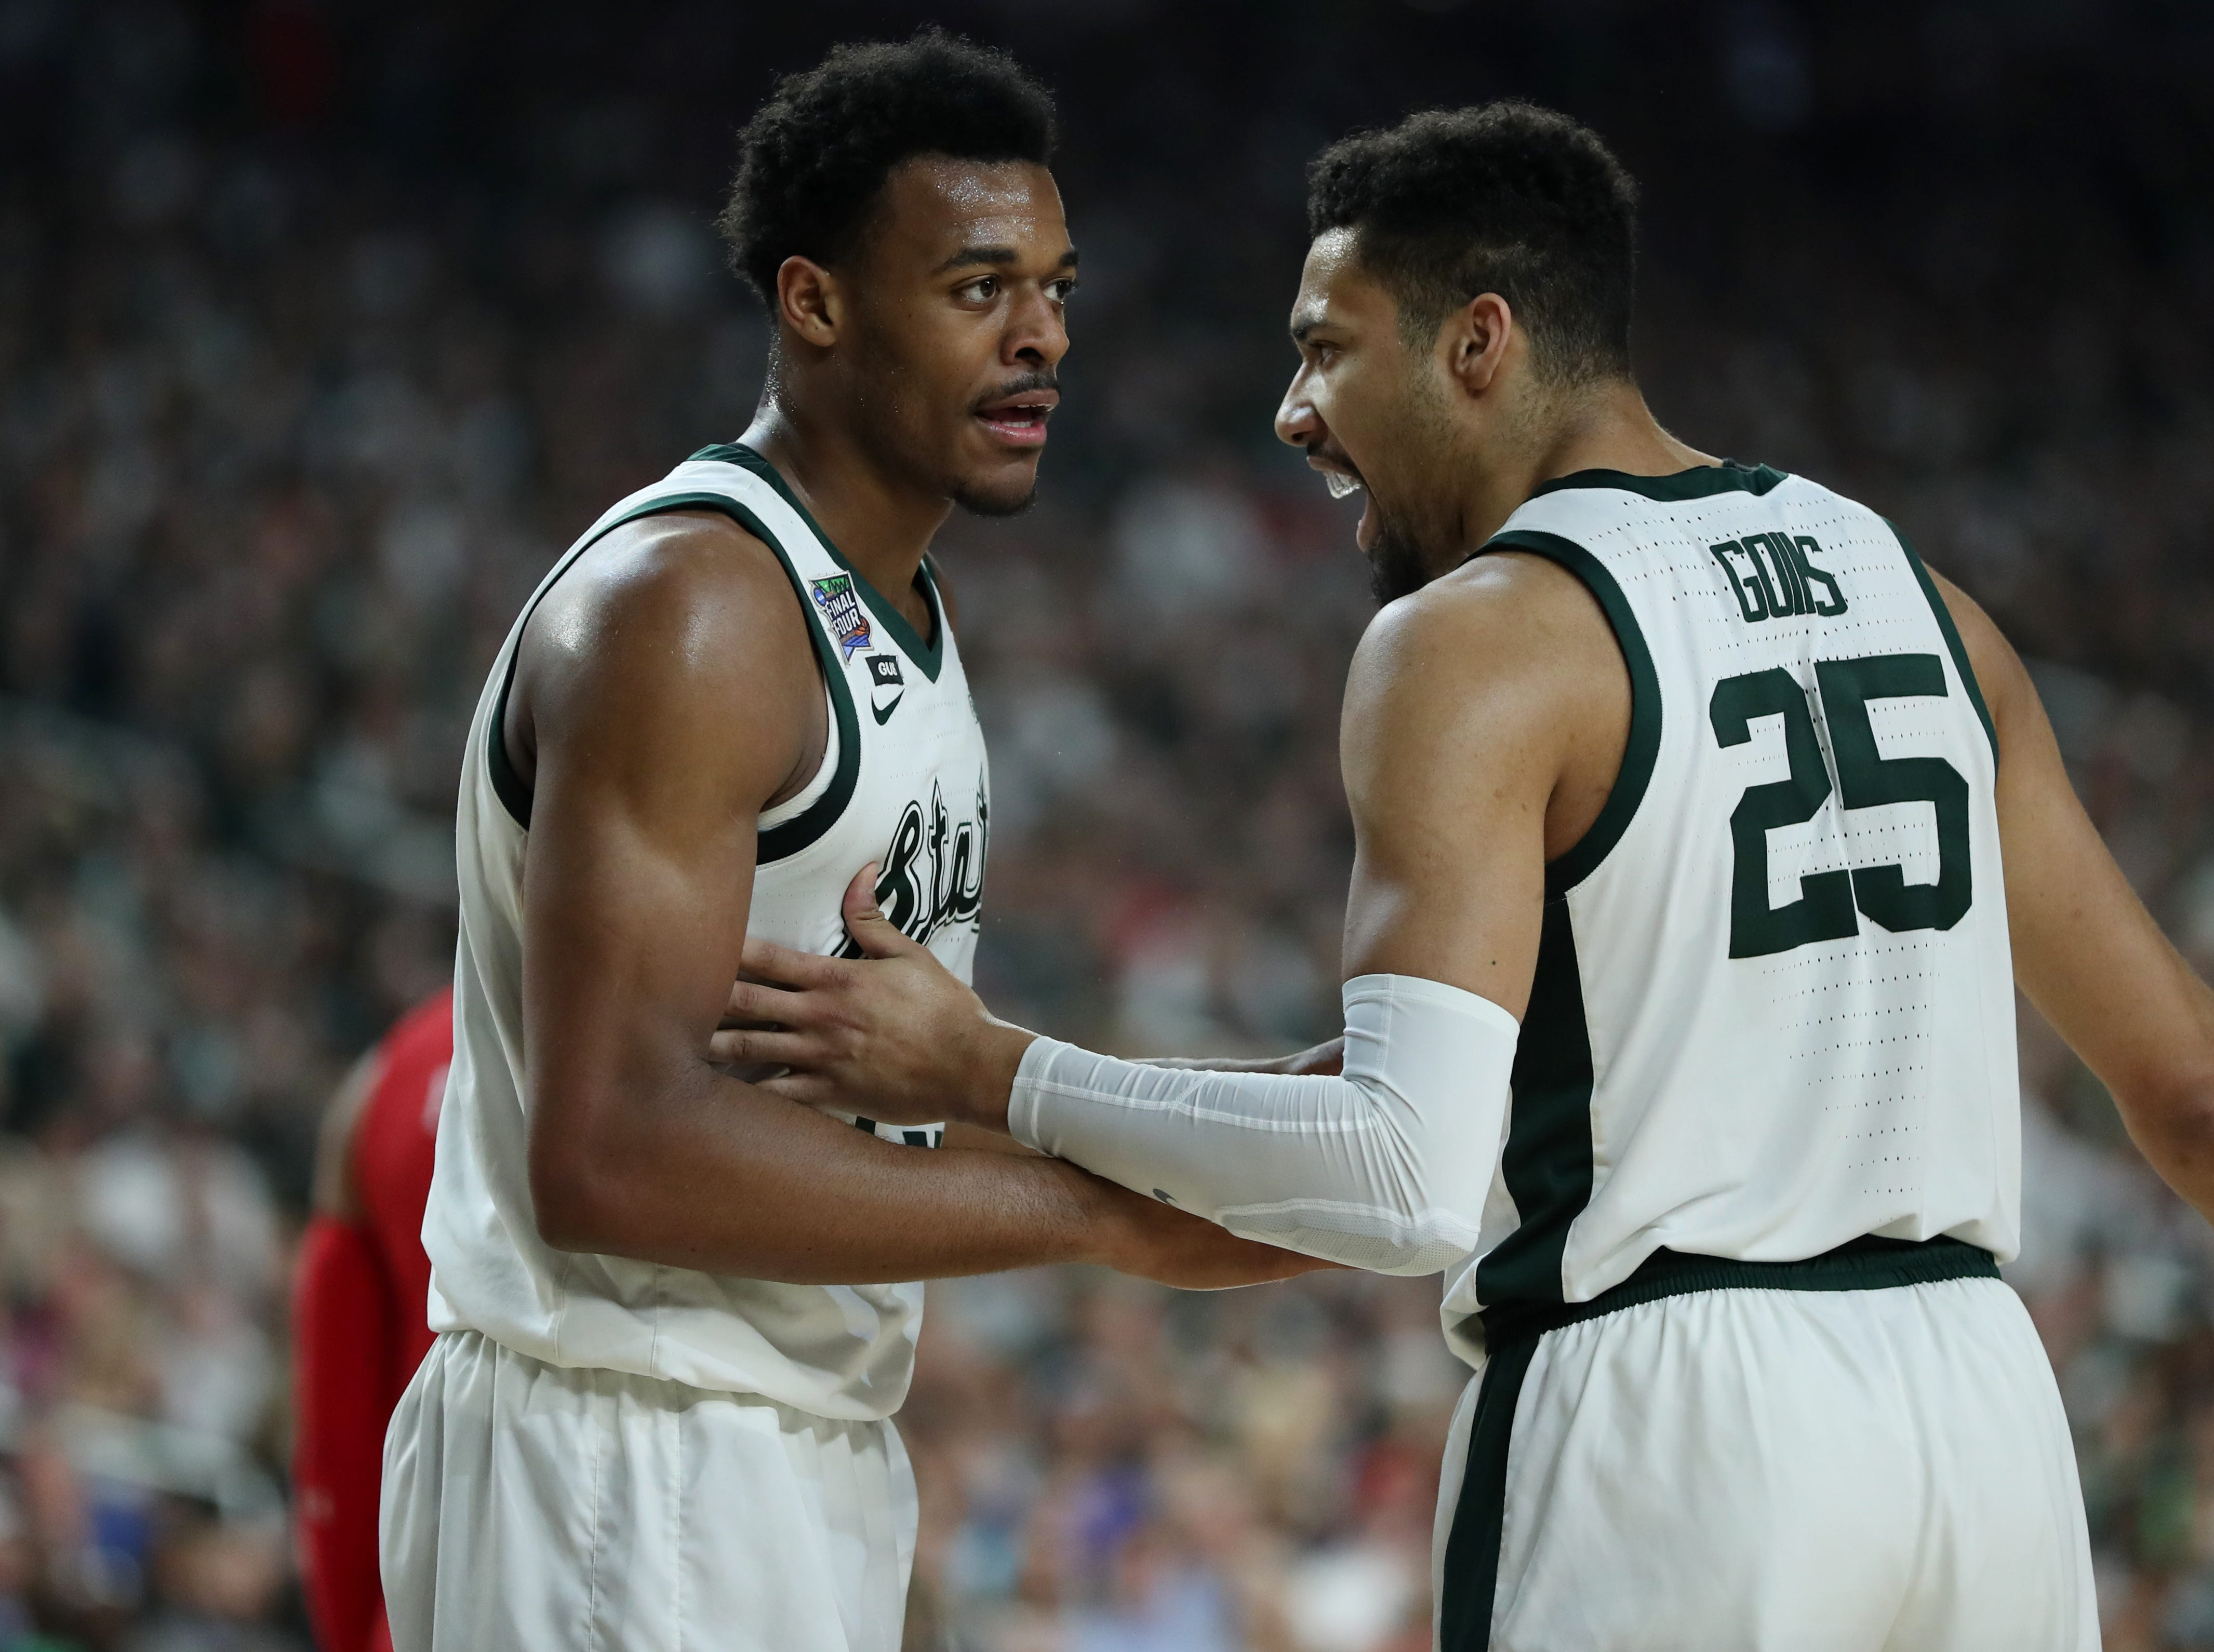 Michigan State forward Xavier Tillman (23) and forward Kenny Goins (25) chat during a break in the action in the first half of their Final Four game -against Texas Tech at U.S. Bank Stadium in Minneapolis, Minnesota on Saturday, April 06, 2019.